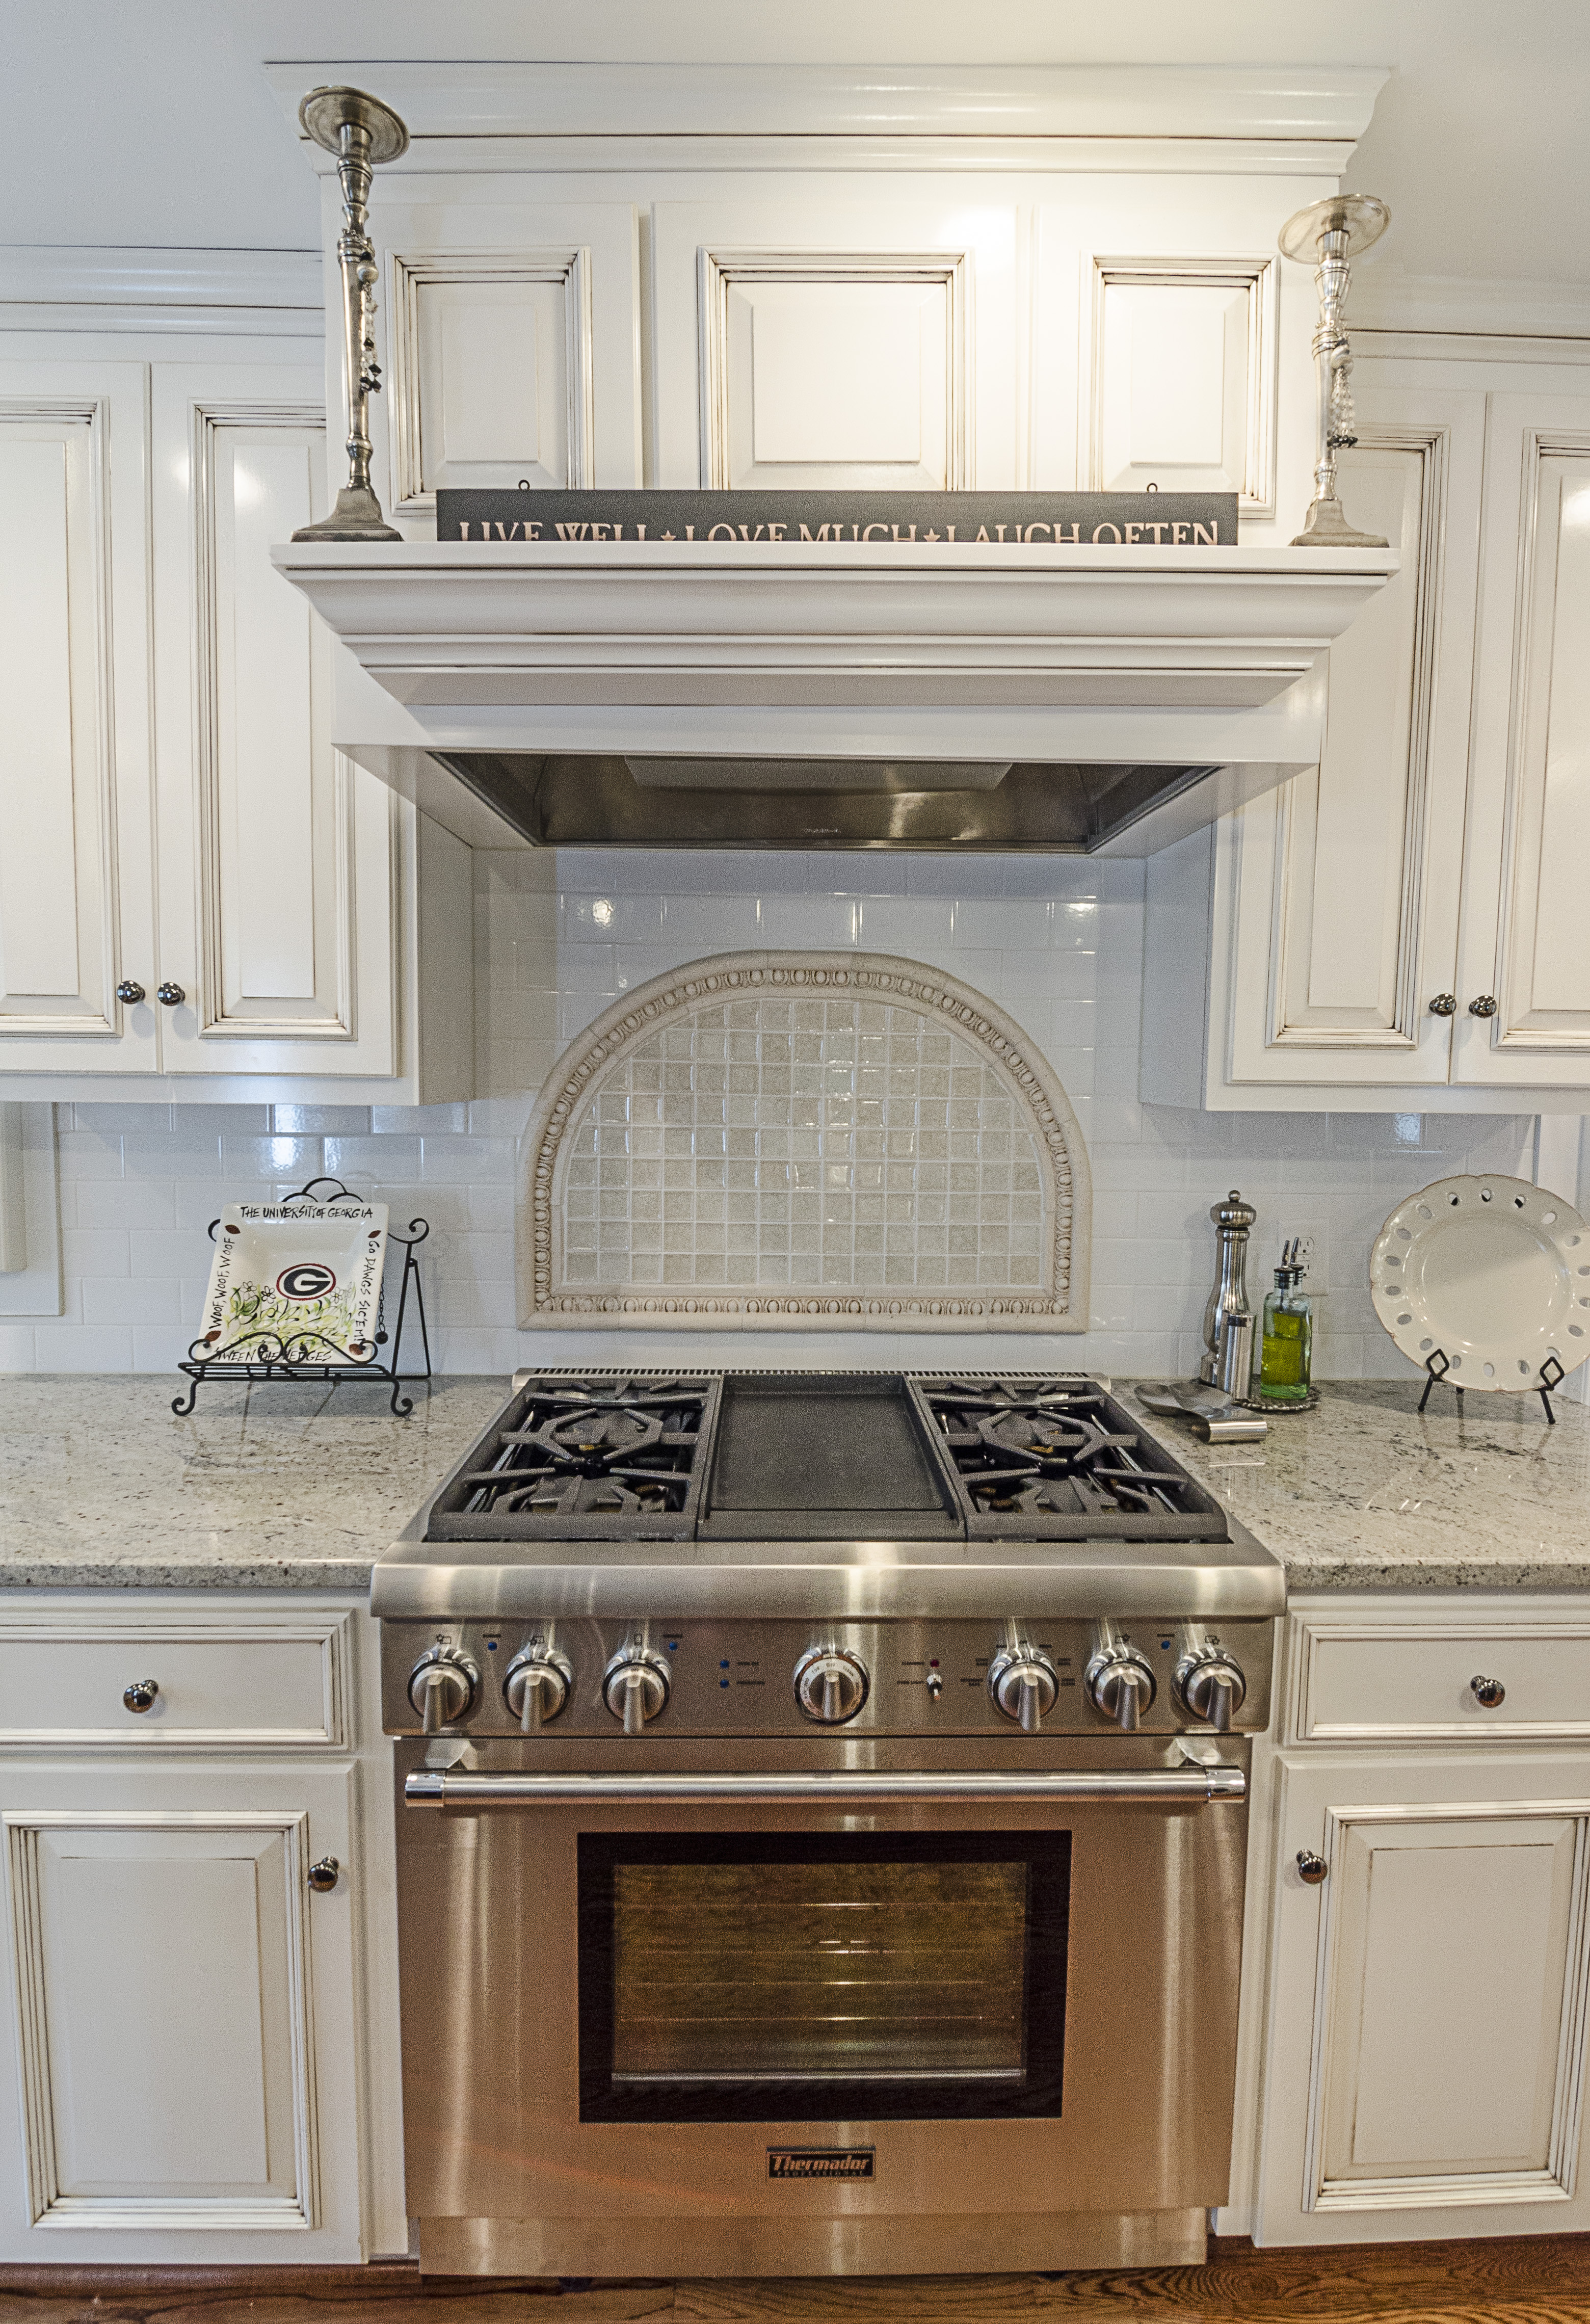 Professional Renovations pany in Atlanta Now Remodels Kitchens